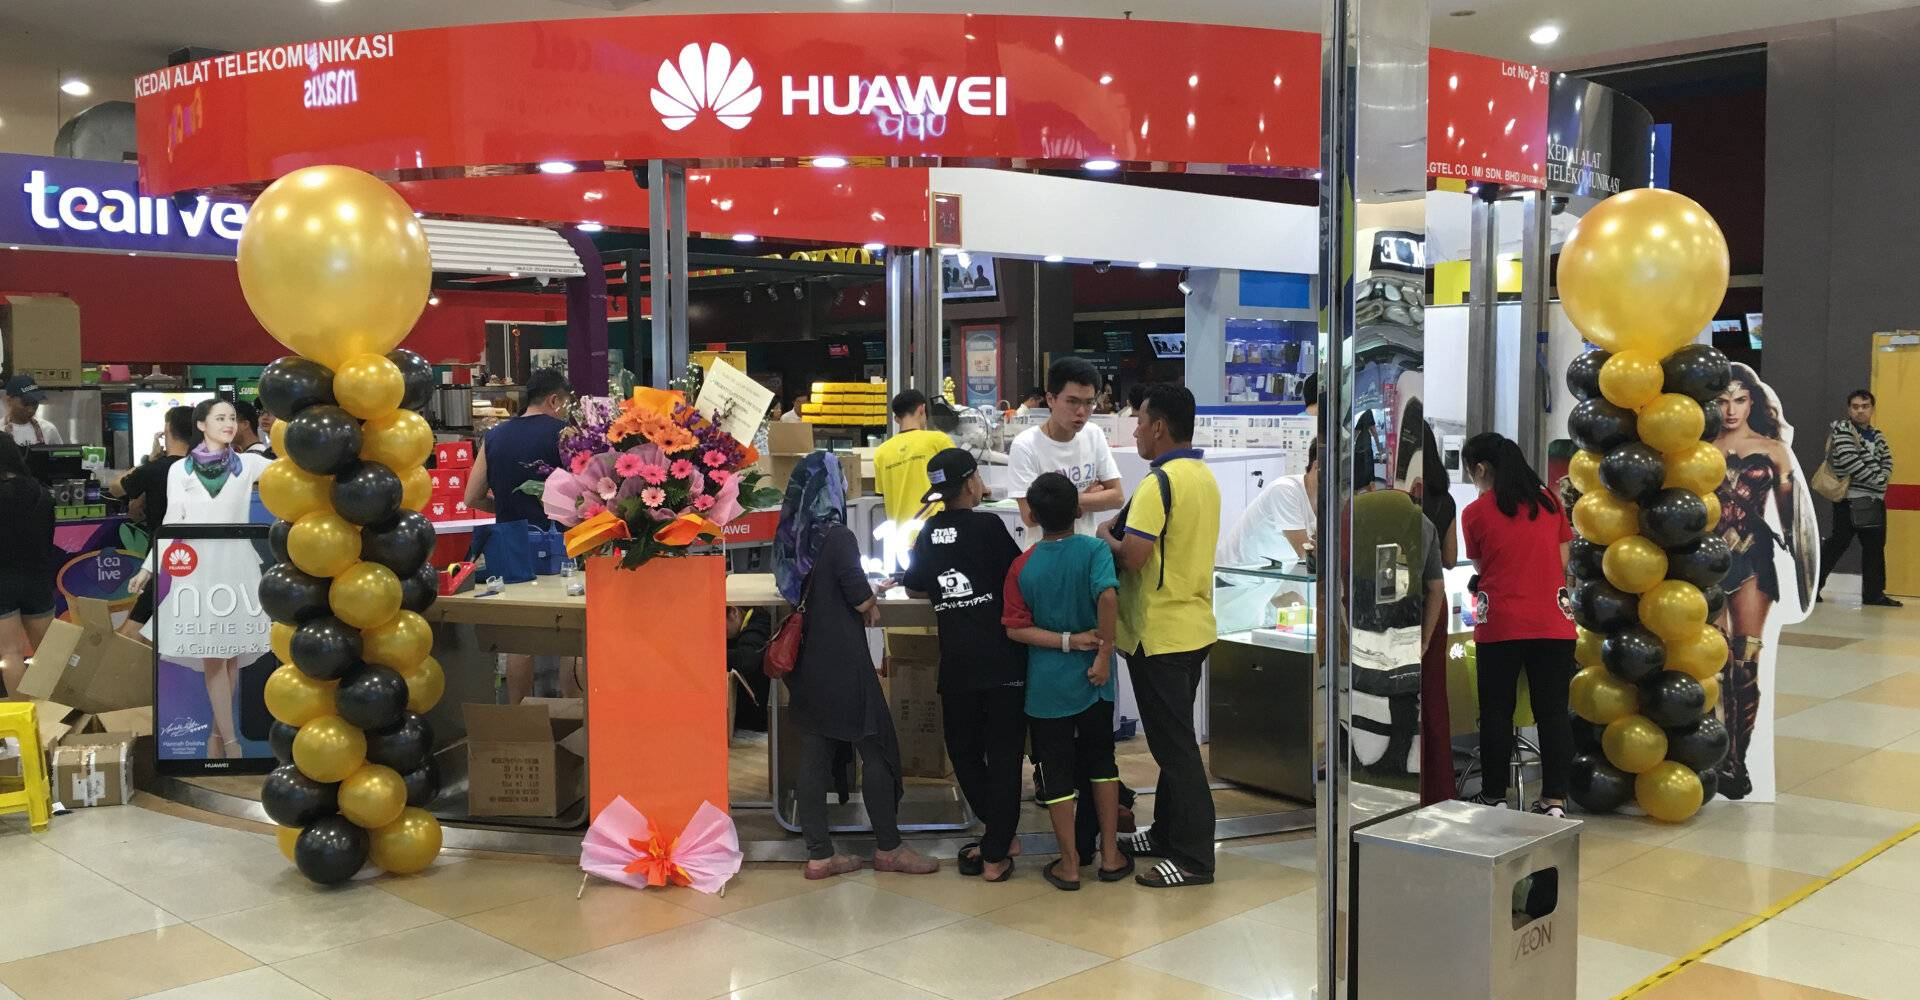 Huawei Shop Decoration